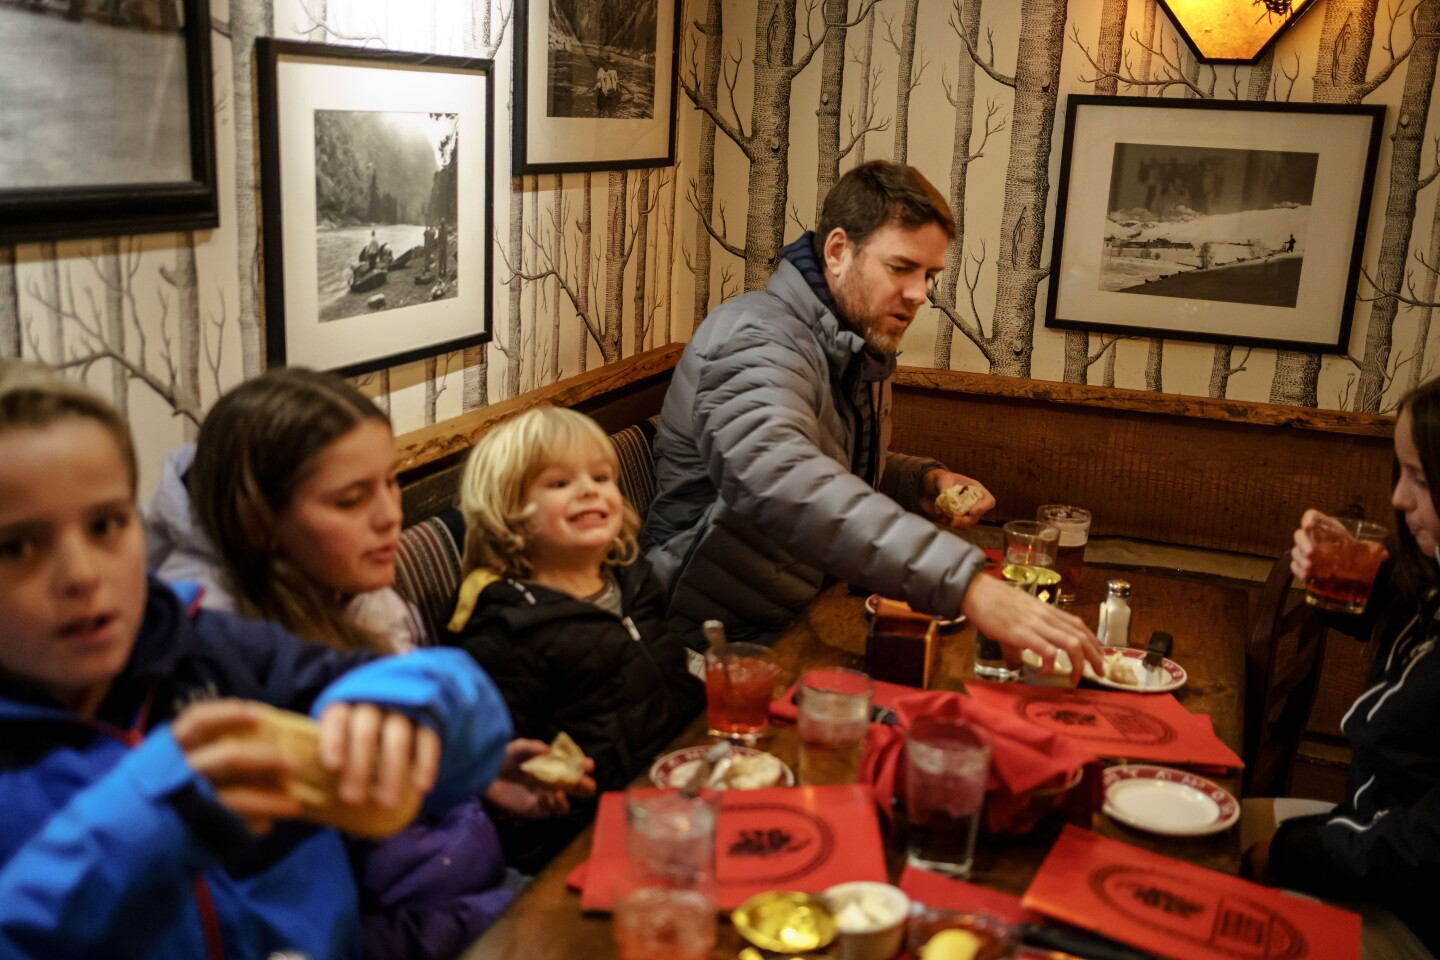 Carson Palmer takes his children, from left, Fletch, Bries, Carter and Elle out to dinner in Ketchum, Idaho, on Dec. 10.